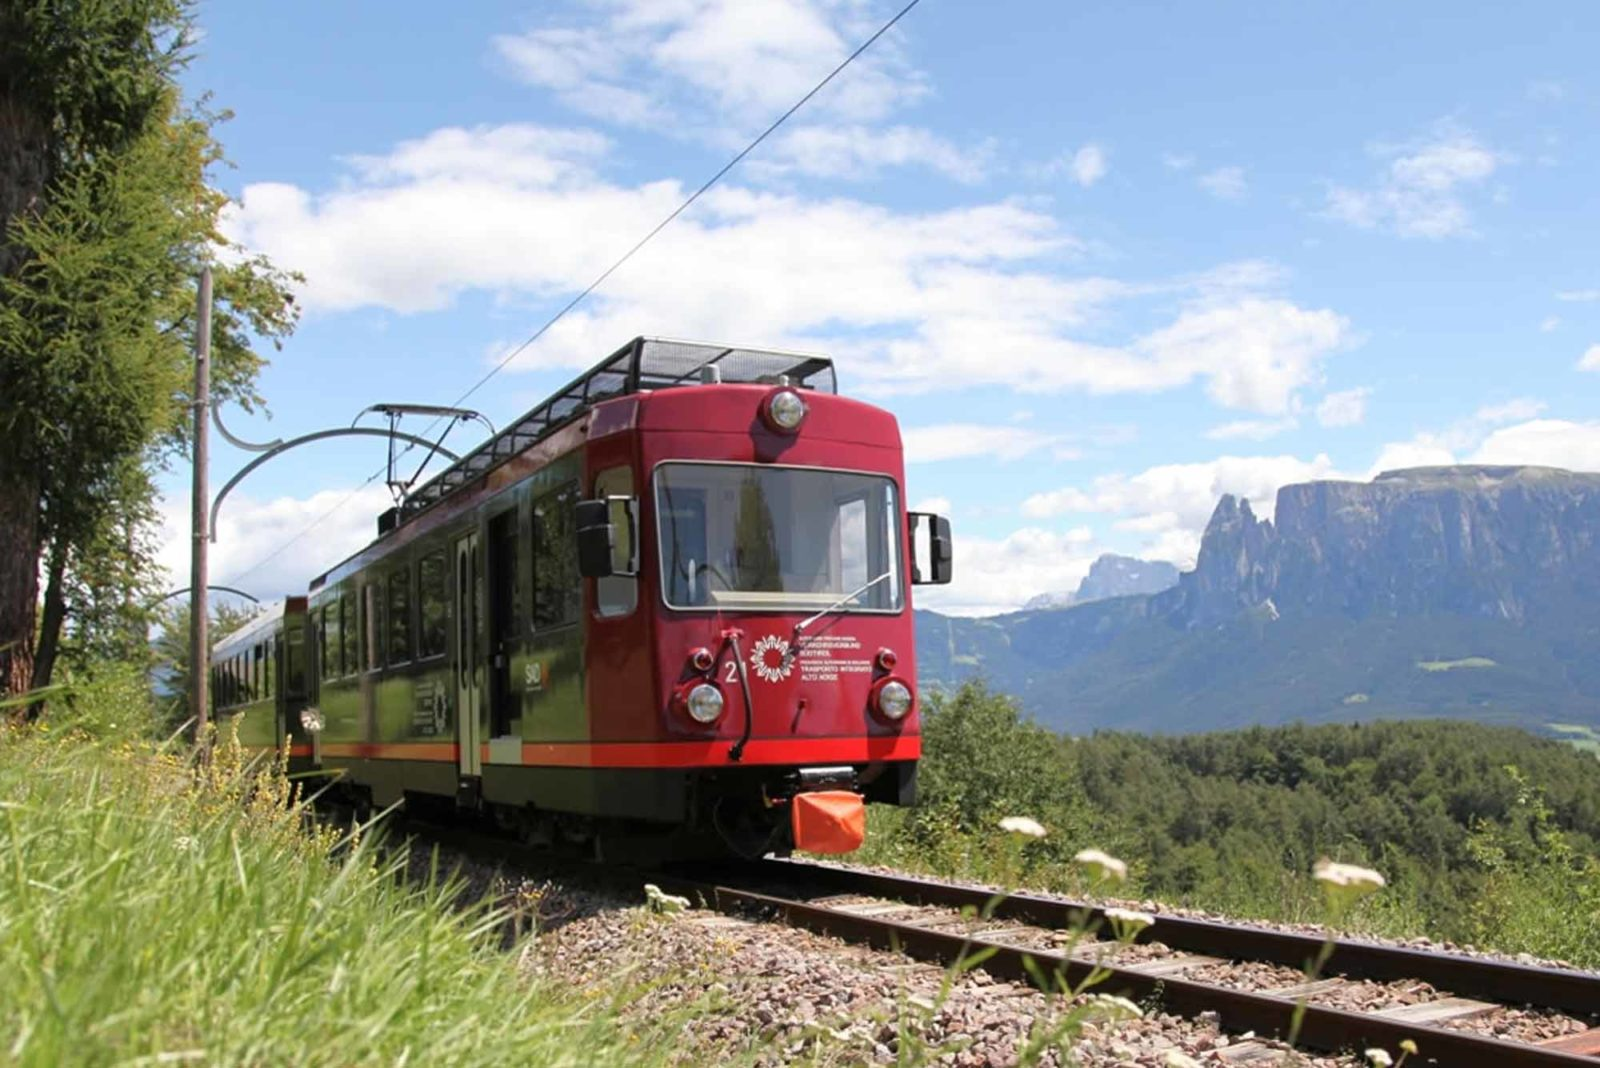 Travel like in the times of emperors: the Rittner narrow gauge railway